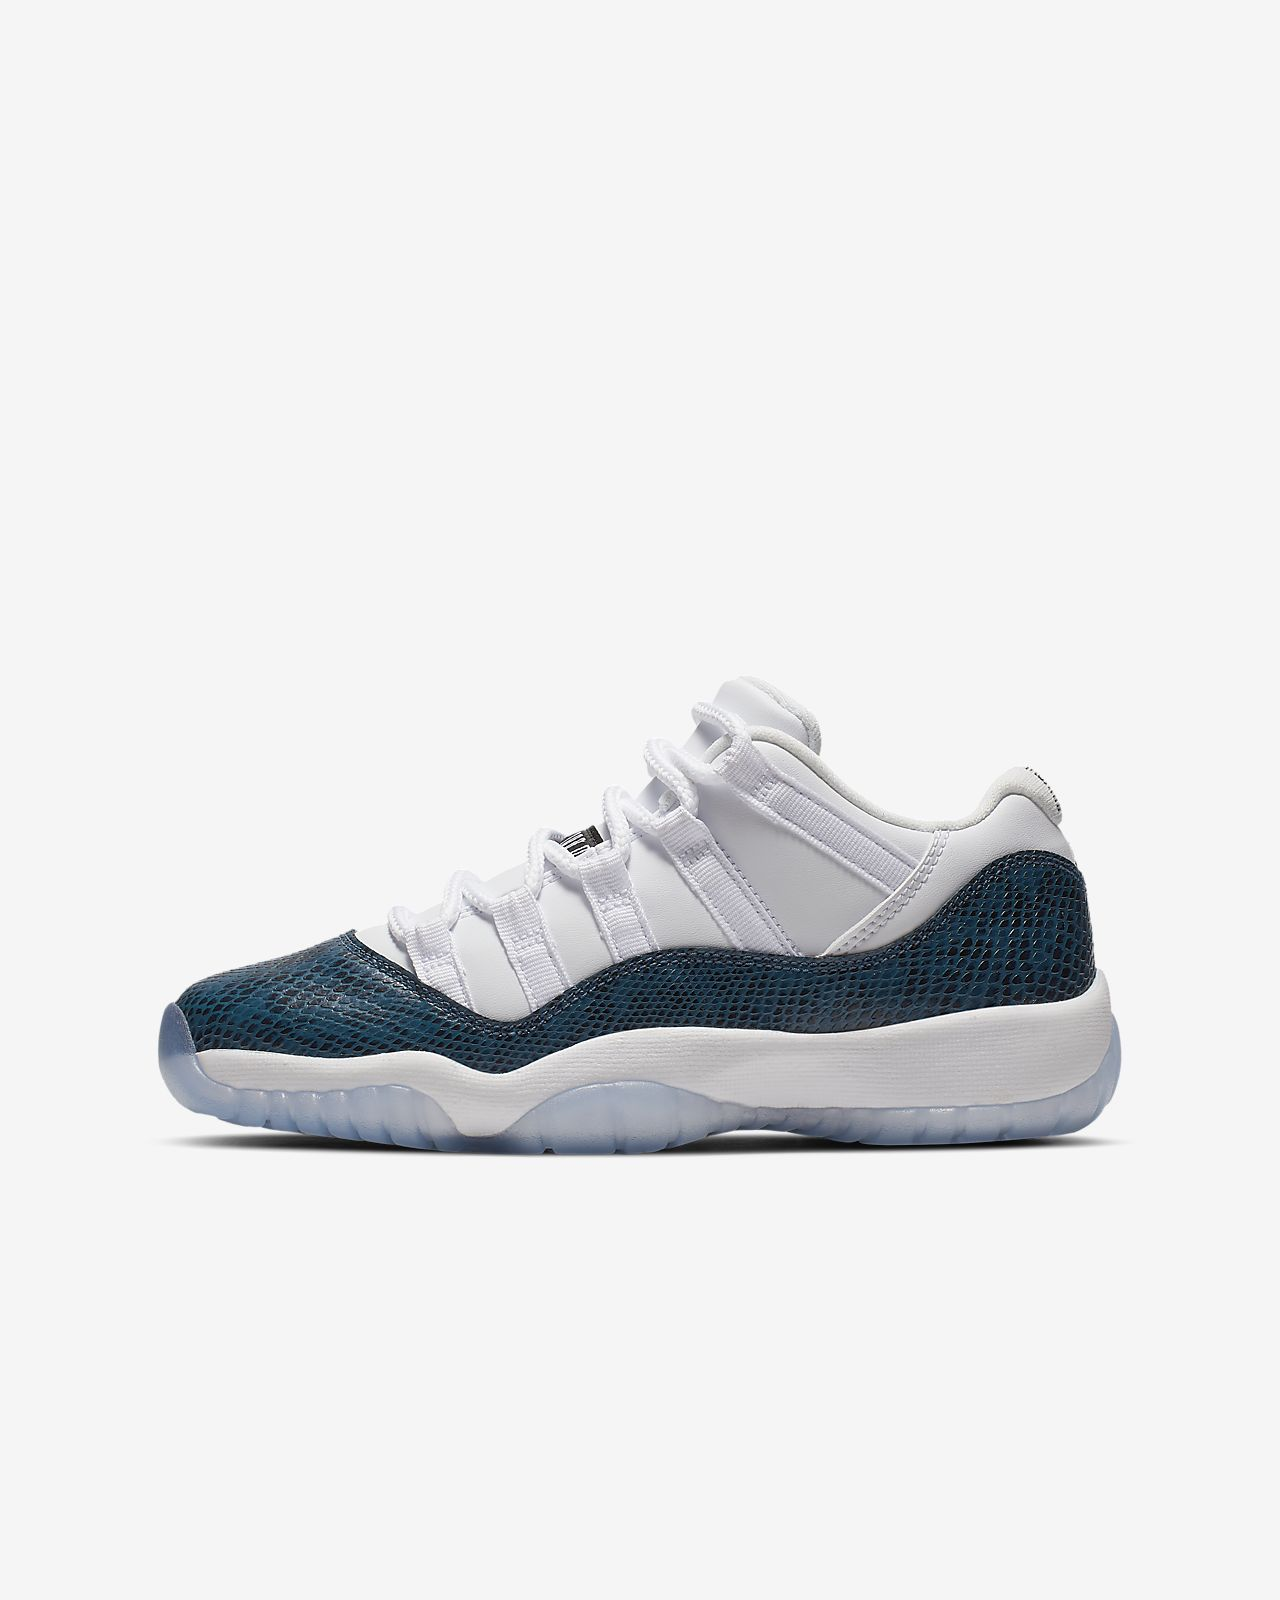 pretty nice f021a 7b648 ... Air Jordan 11 Retro Low LE Big Kids  Shoe